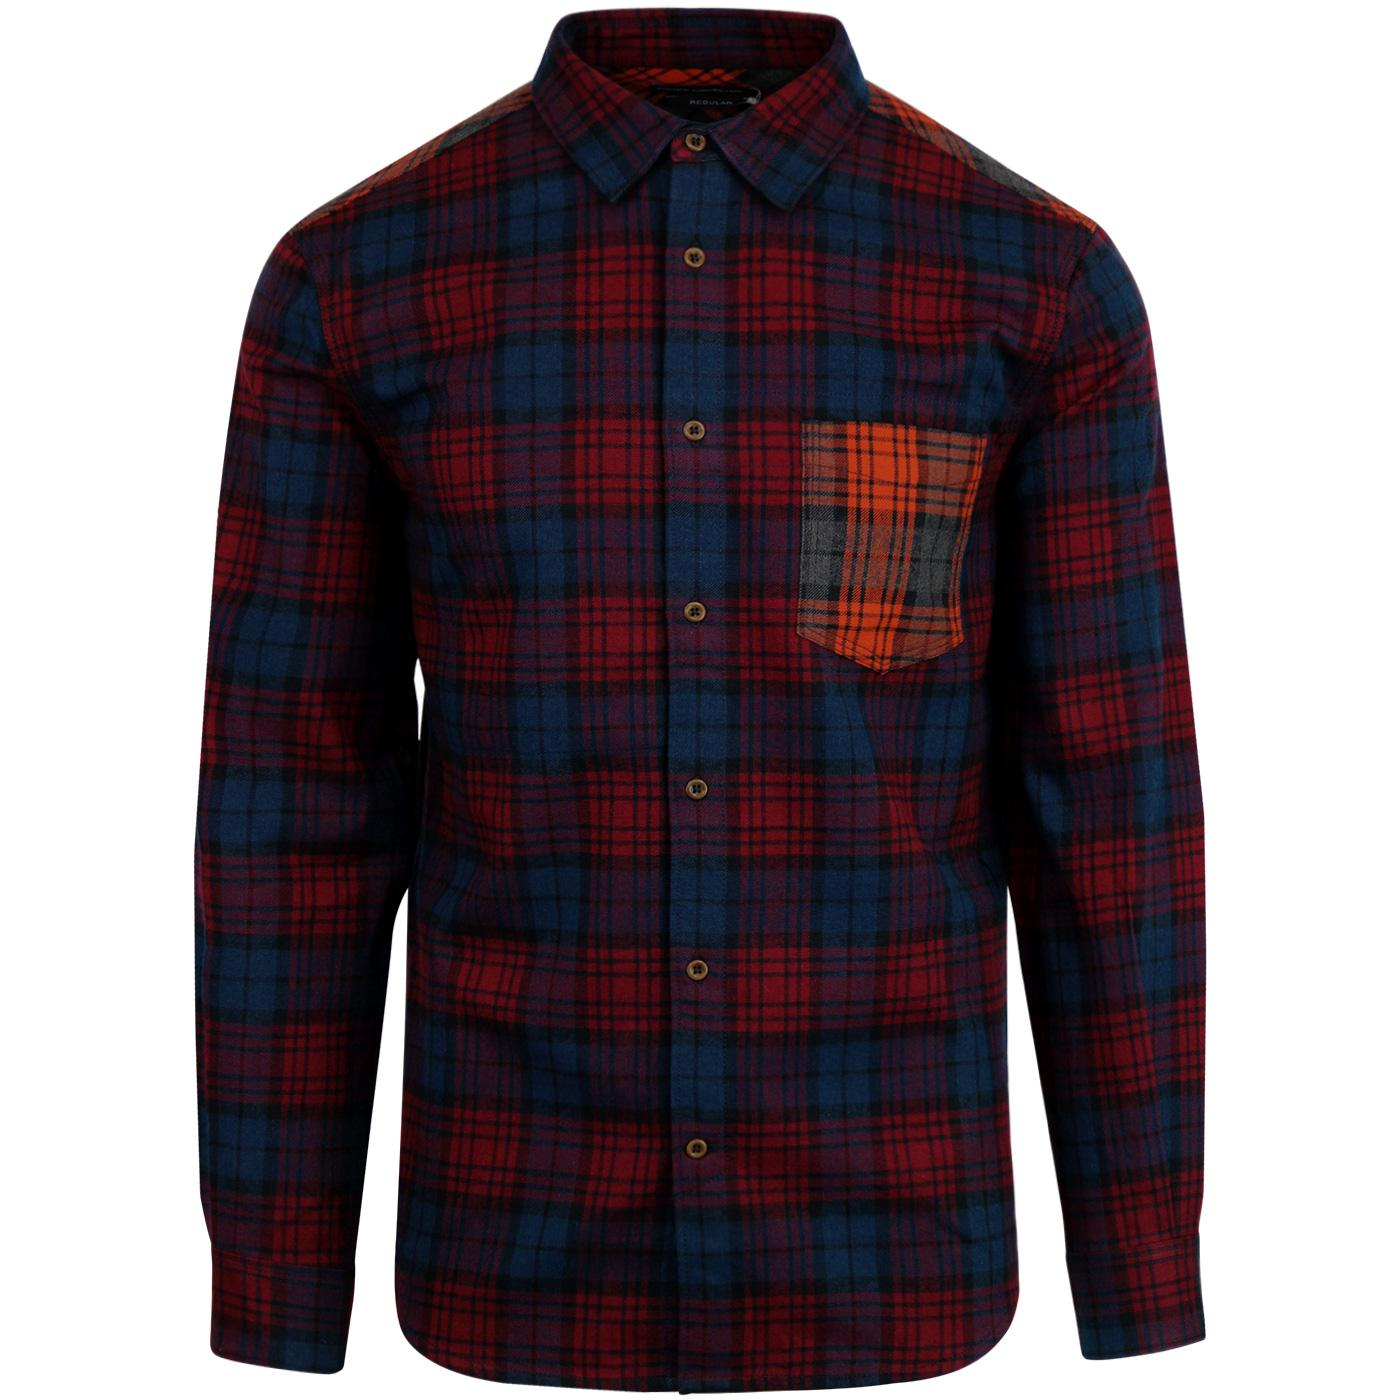 FRENCH CONNECTION Retro Mod Flannel Tartan Shirt